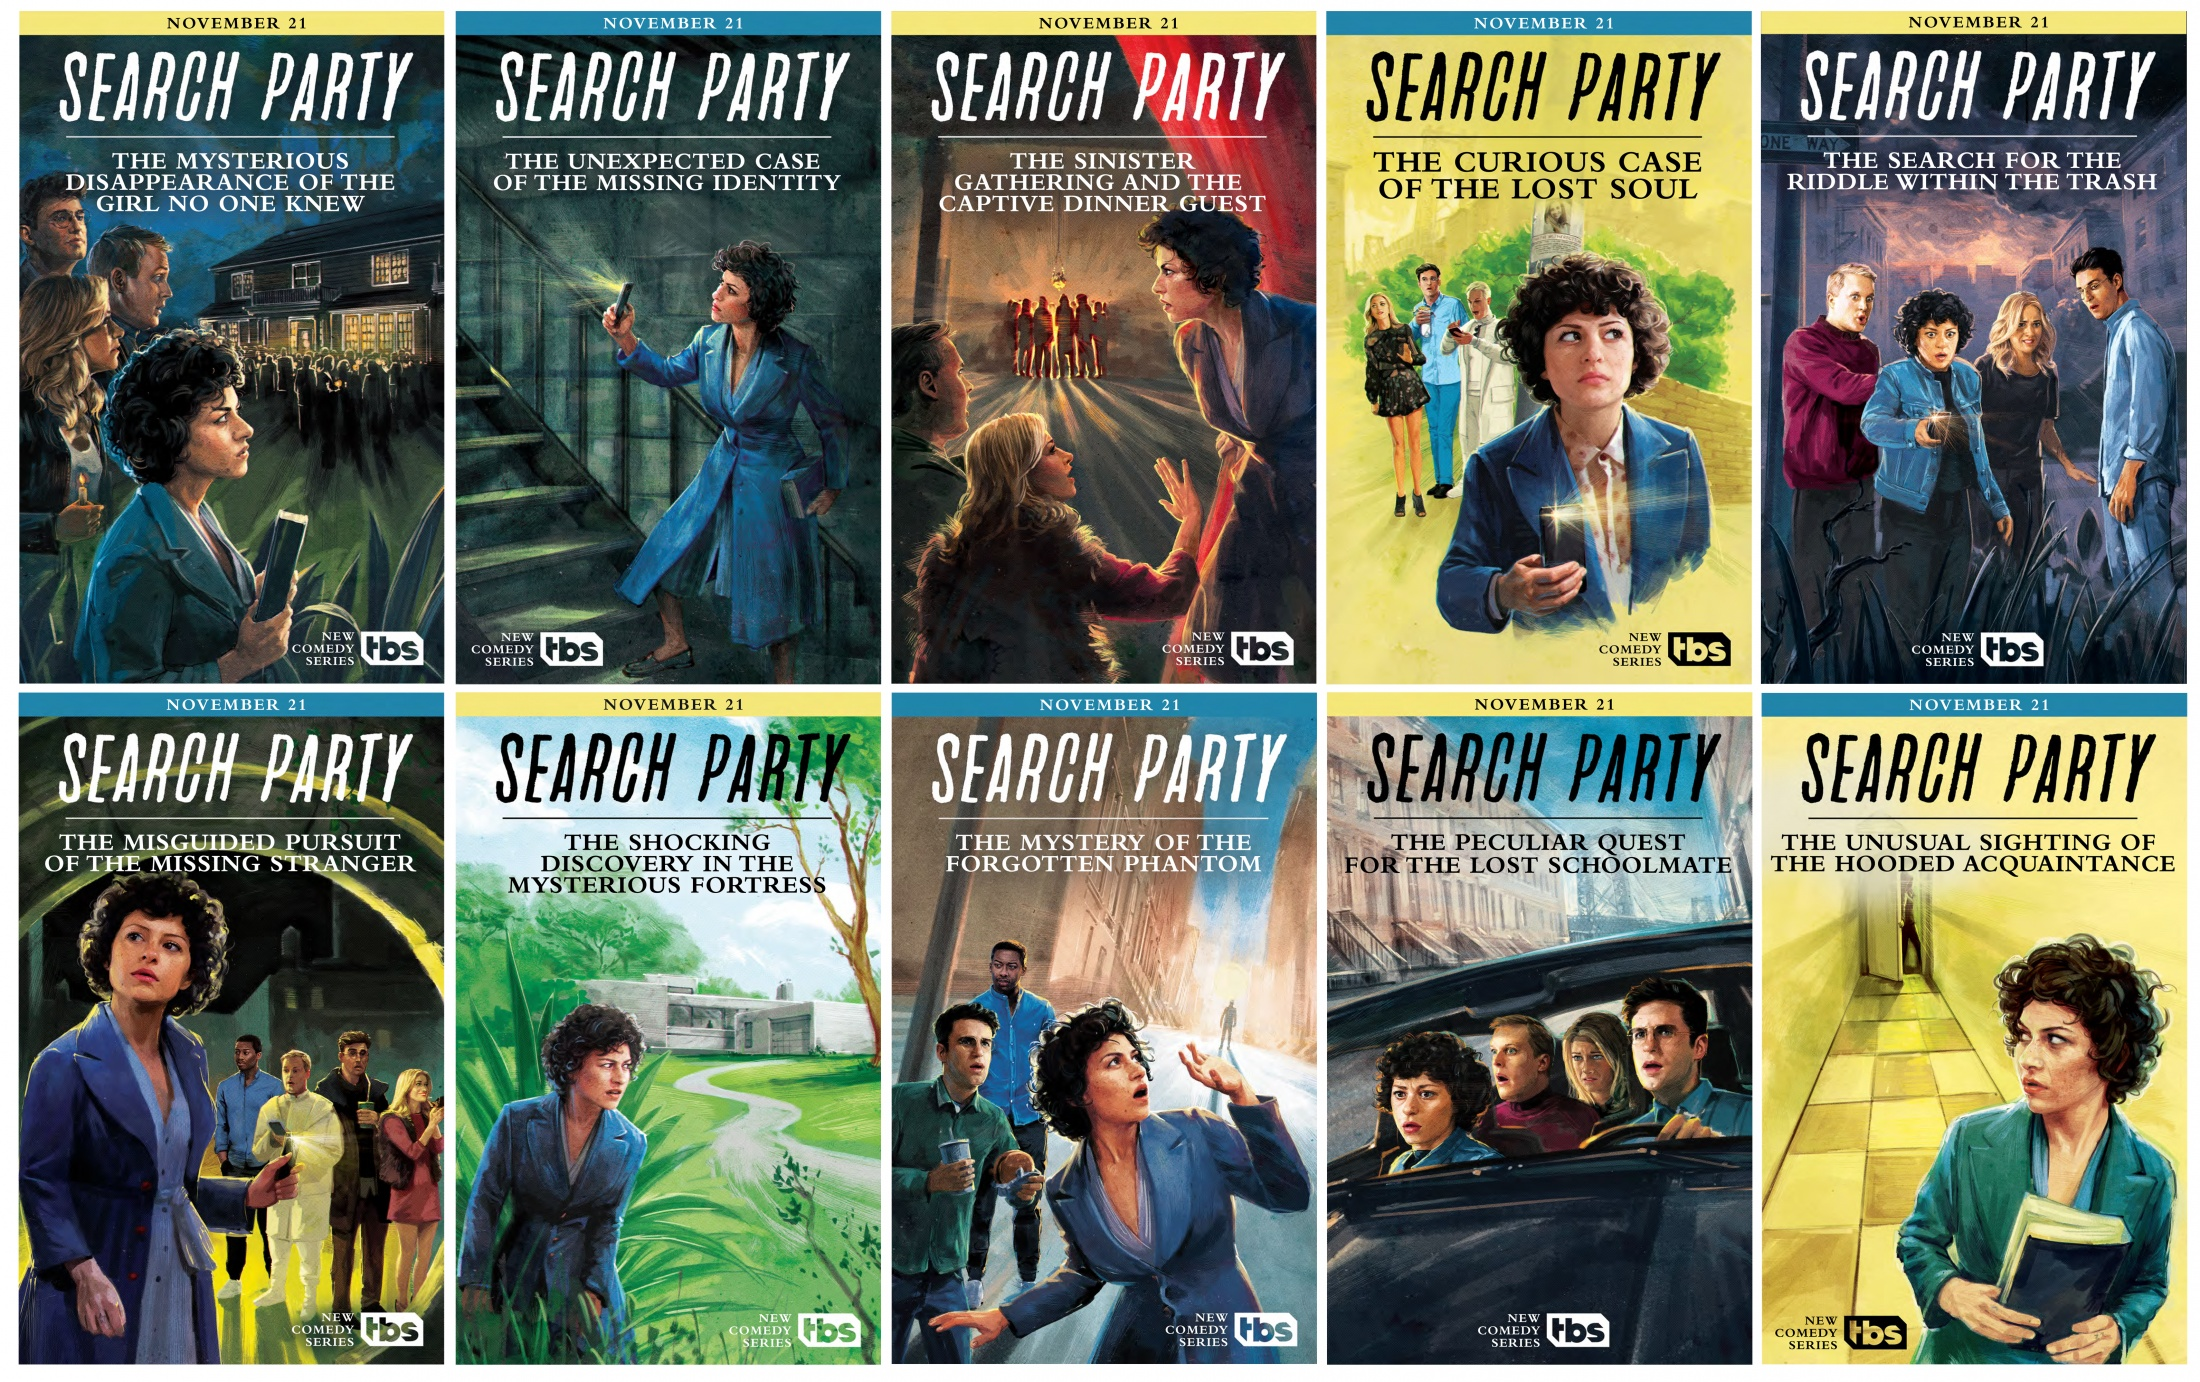 Thumbnail for Search Party: S1 Posters